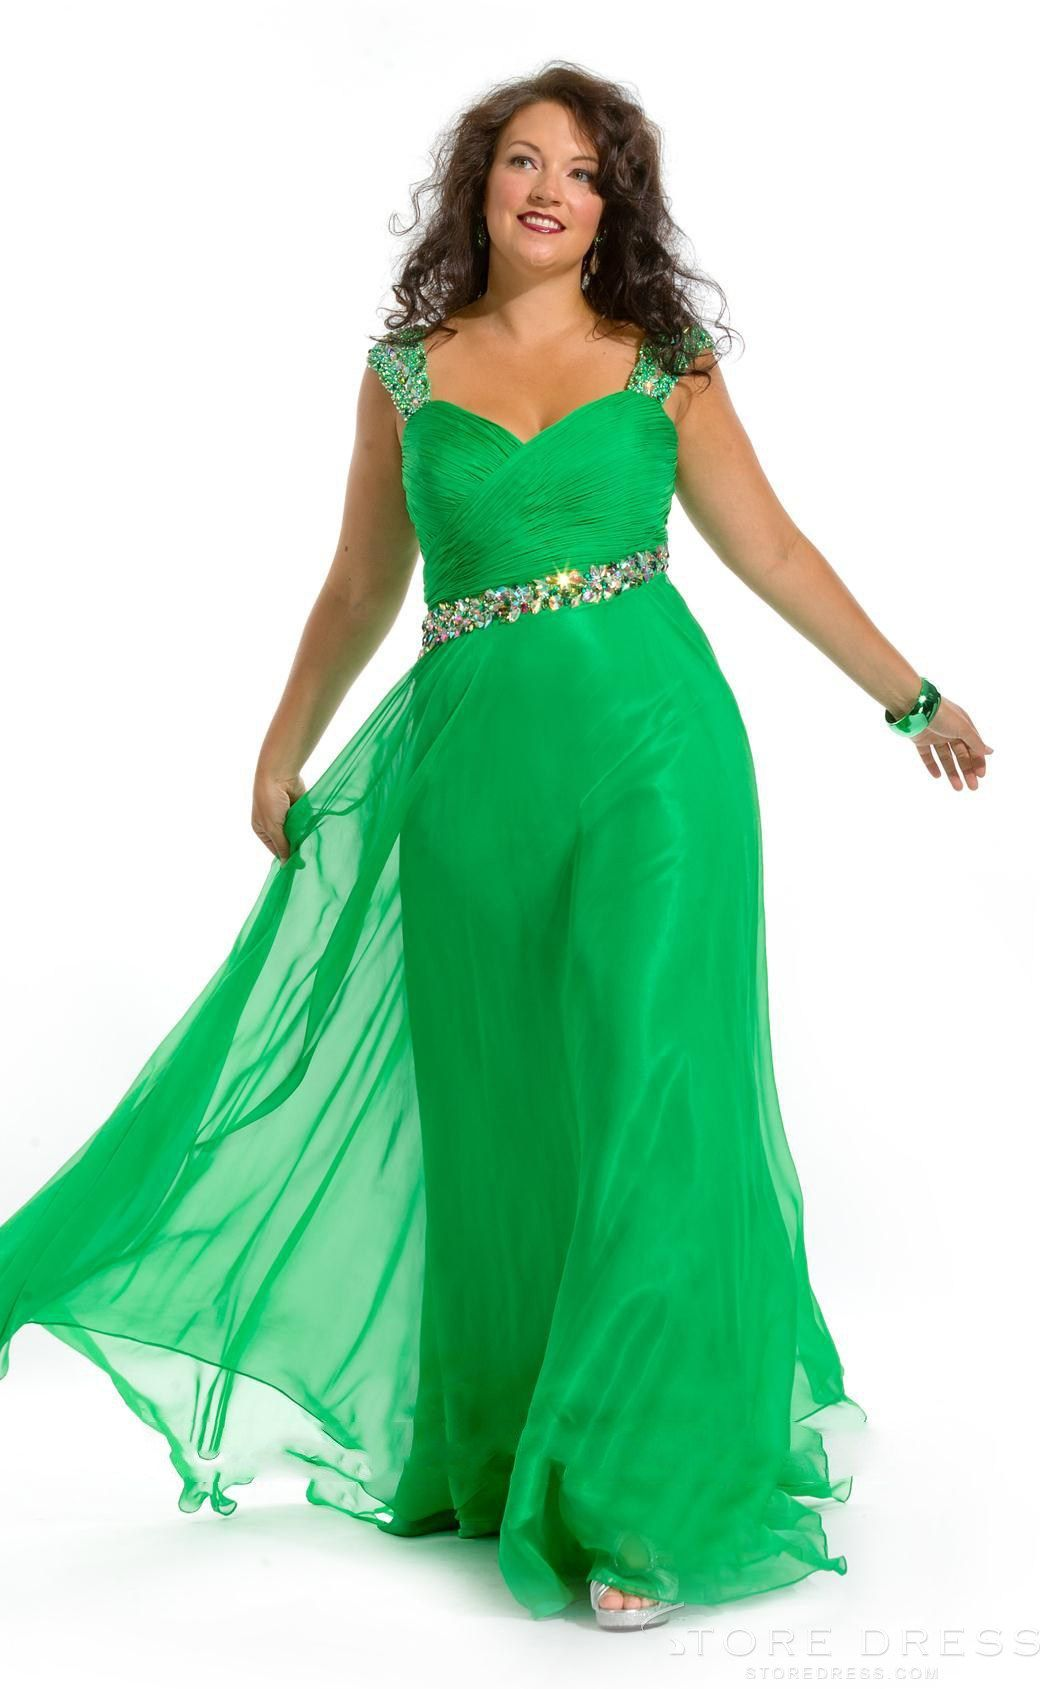 Sears plus size prom dresses gallery dresses design ideas flowing ballgown with beaded straps party plus new gown ideas a line sweetheart neck cap sleeve ombrellifo Choice Image